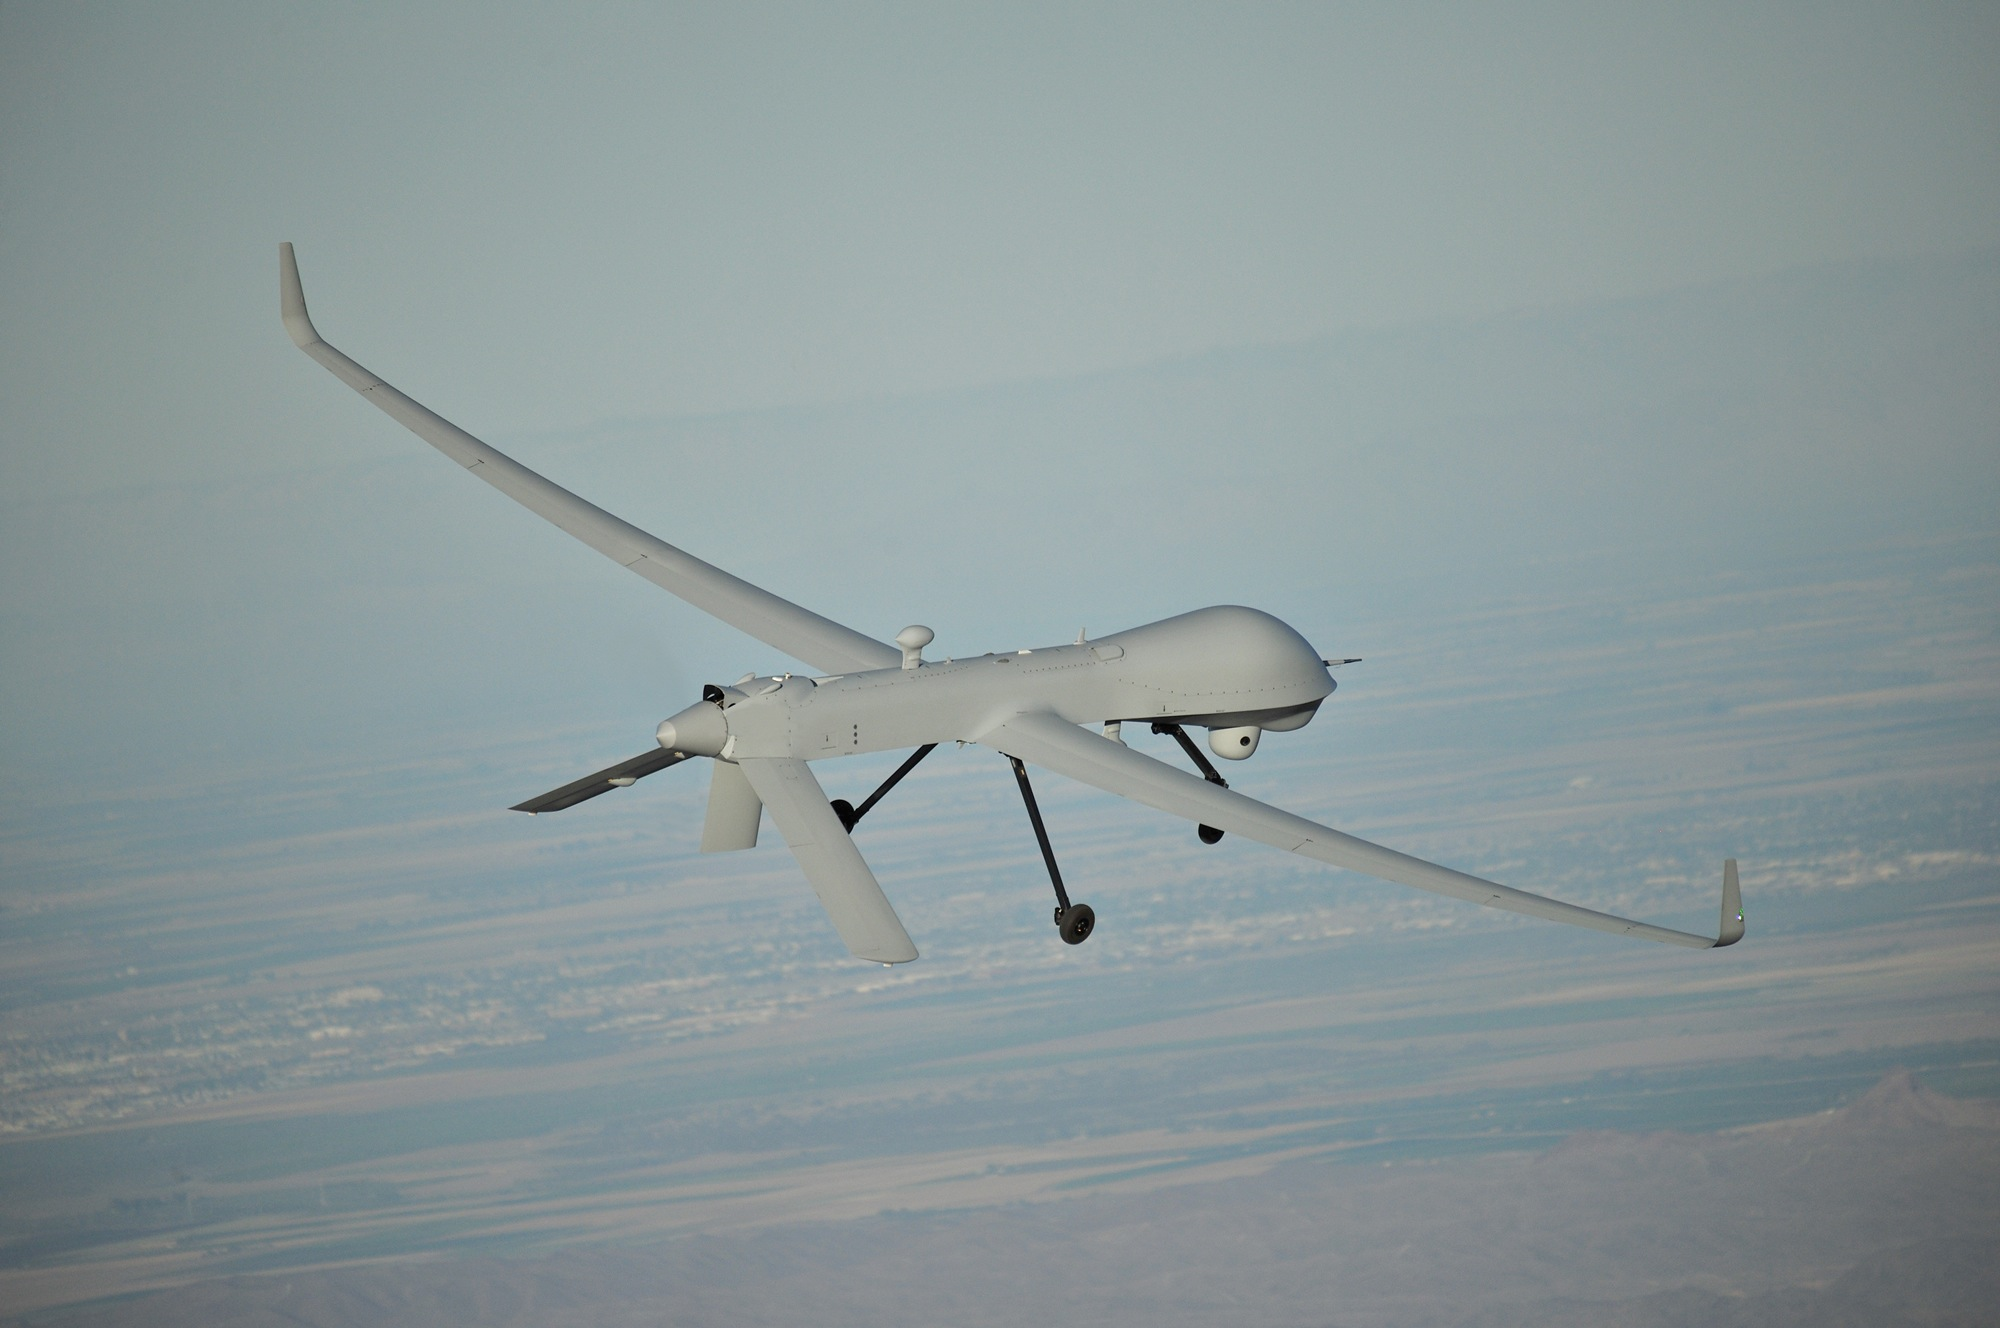 General Atomics Predator XP en vol